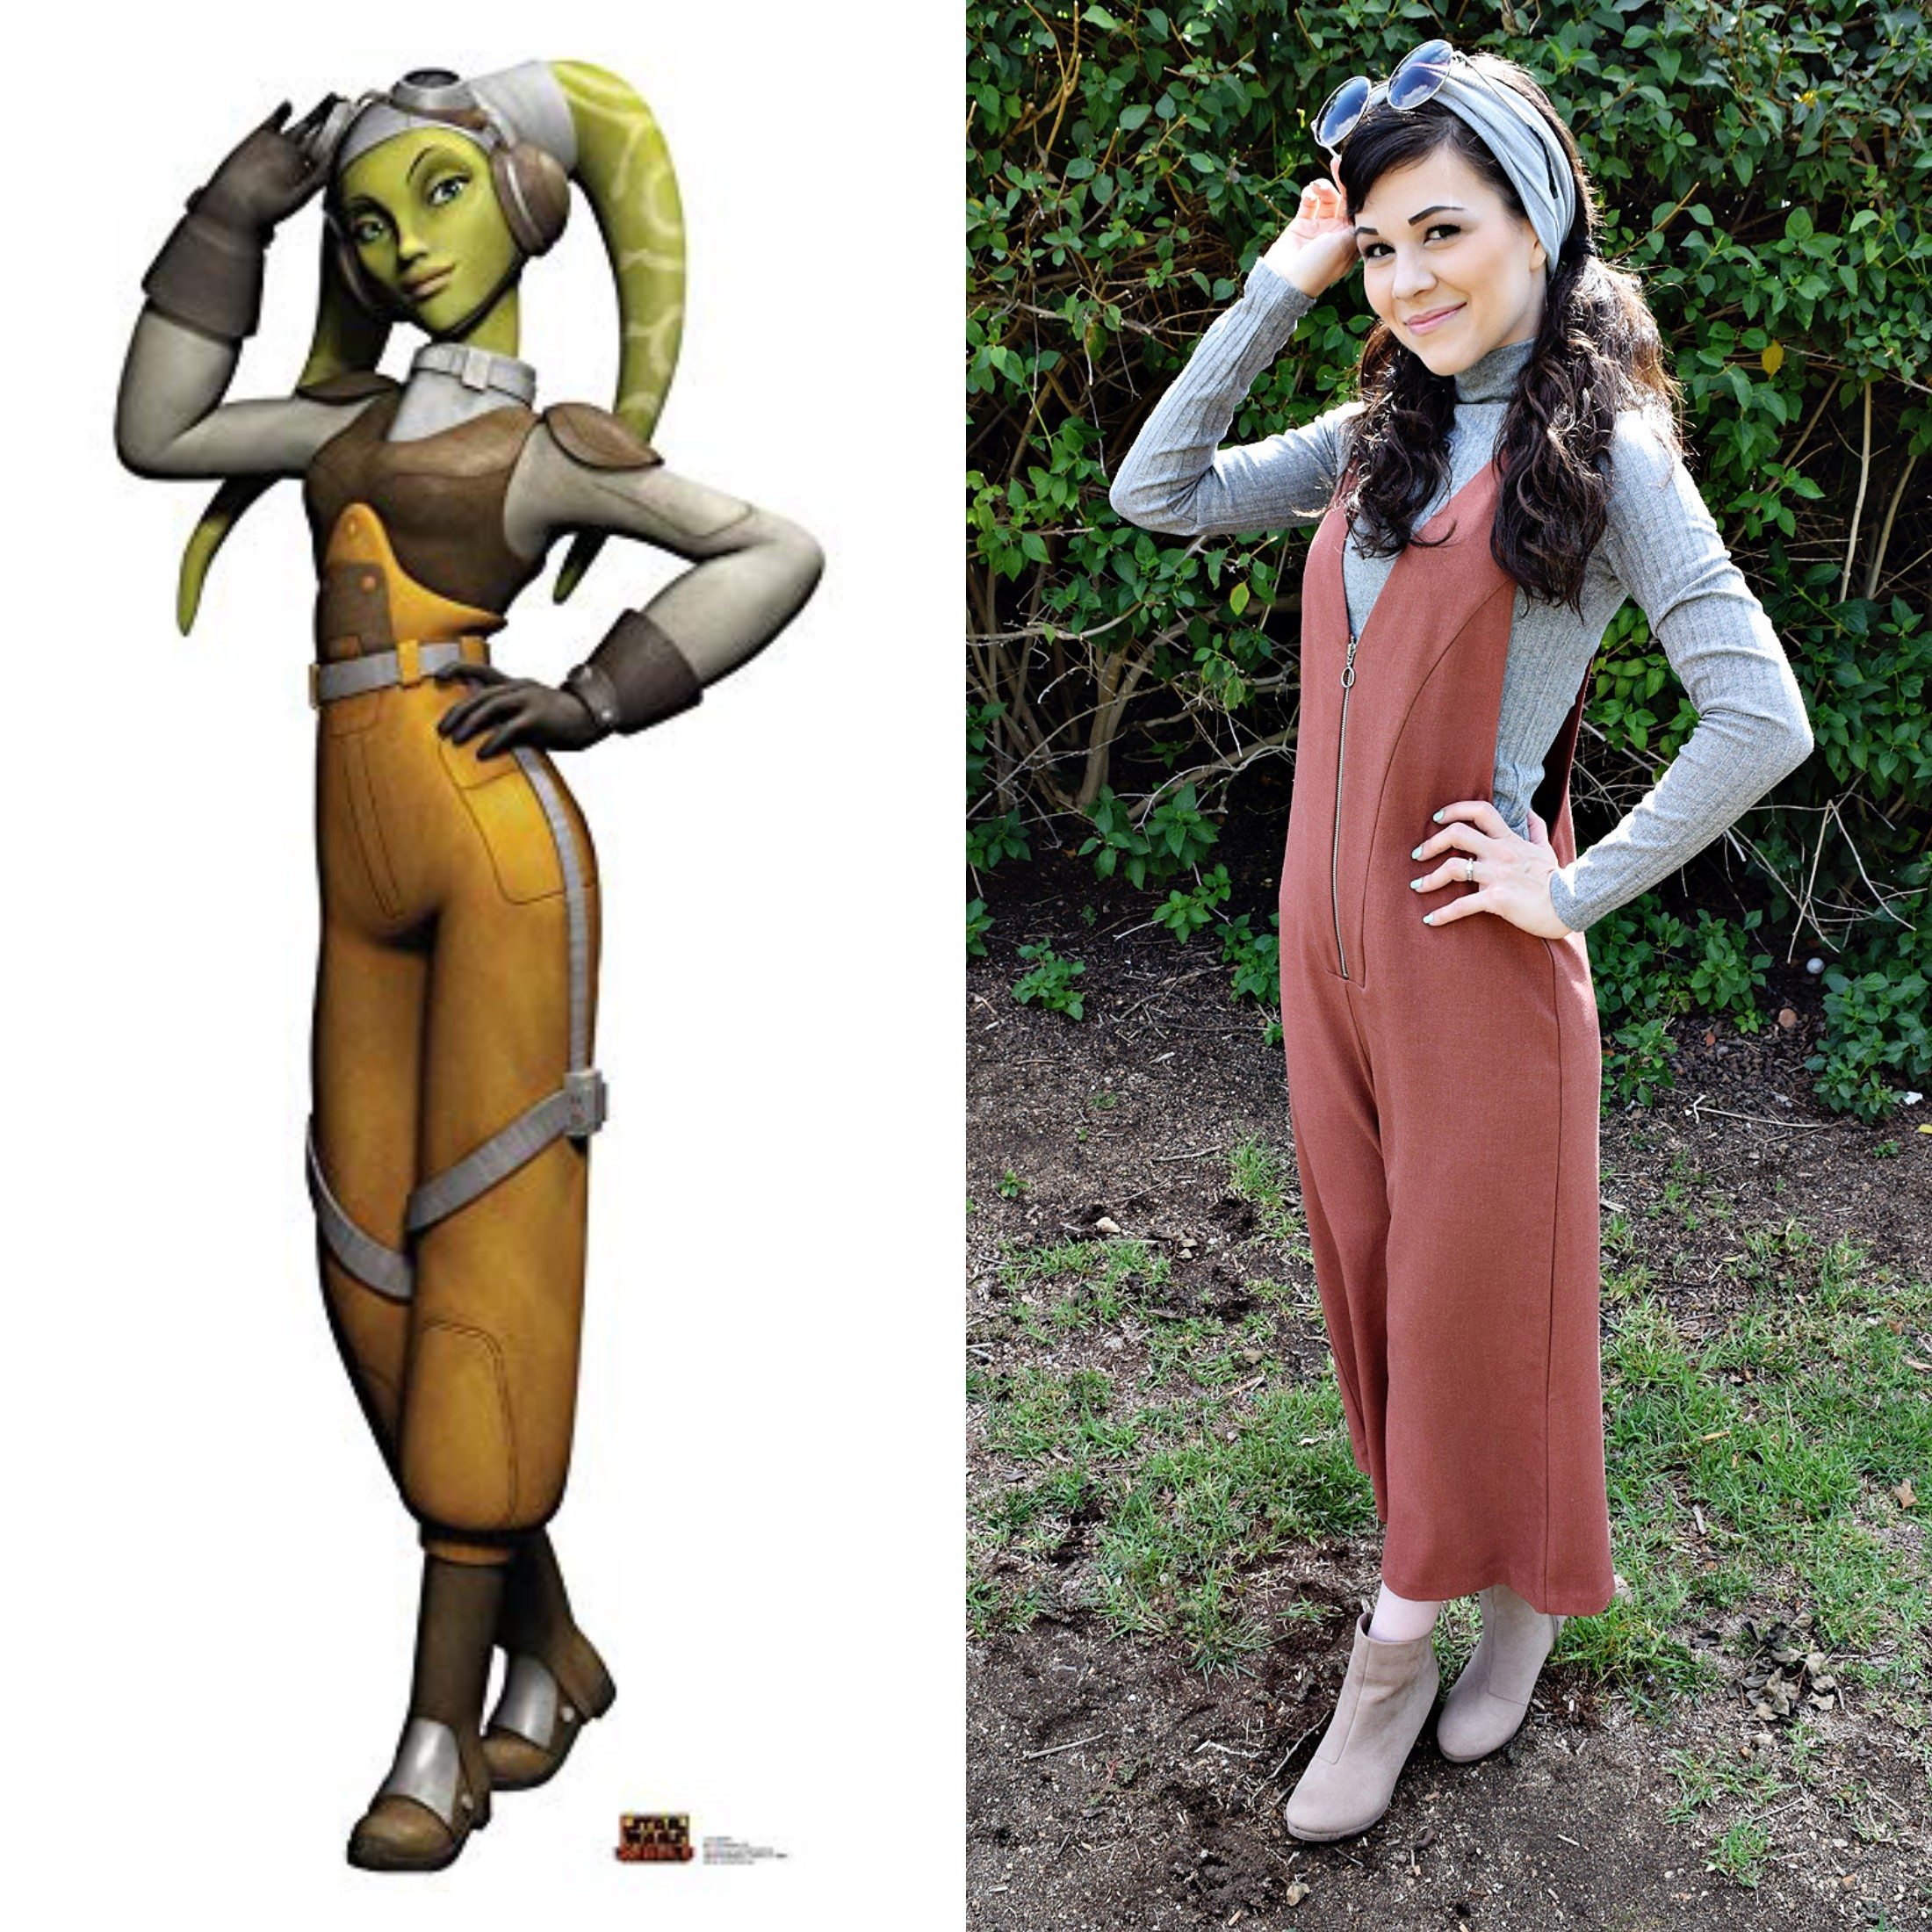 Star Wars OOTD: Hera Syndulla | Anakin and His Angel